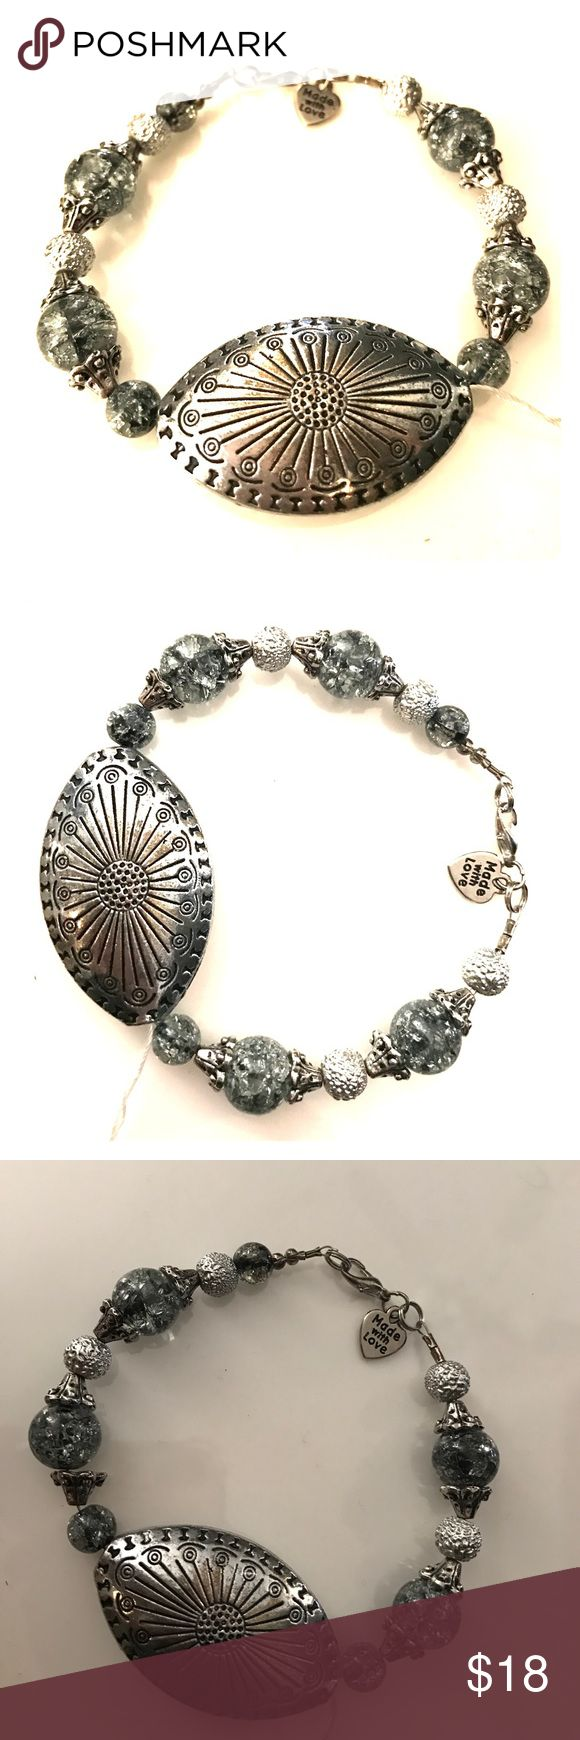 """Plus size handmade focal bead bracelet size 9"""" This bracelet is handmade. The glass beads are the grey beads. Large metal focal bead. Double crimped and made with high quality strands for durability. Measures approximately 9."""" Bundle with other items in my closet to save even more. Jewelry Bracelets"""